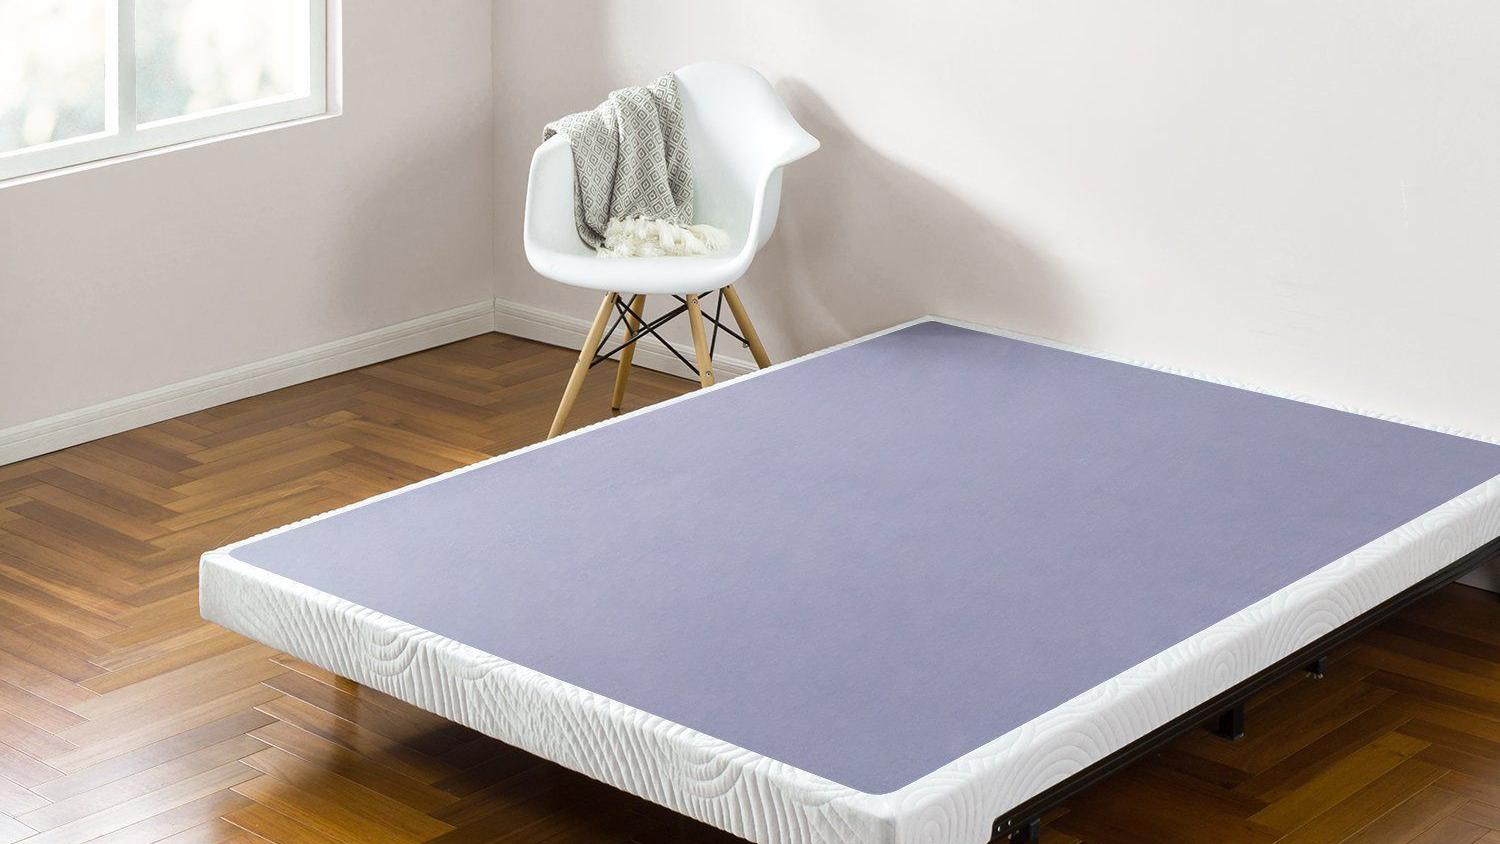 Amazon shoppers are raving about this low-profile bed